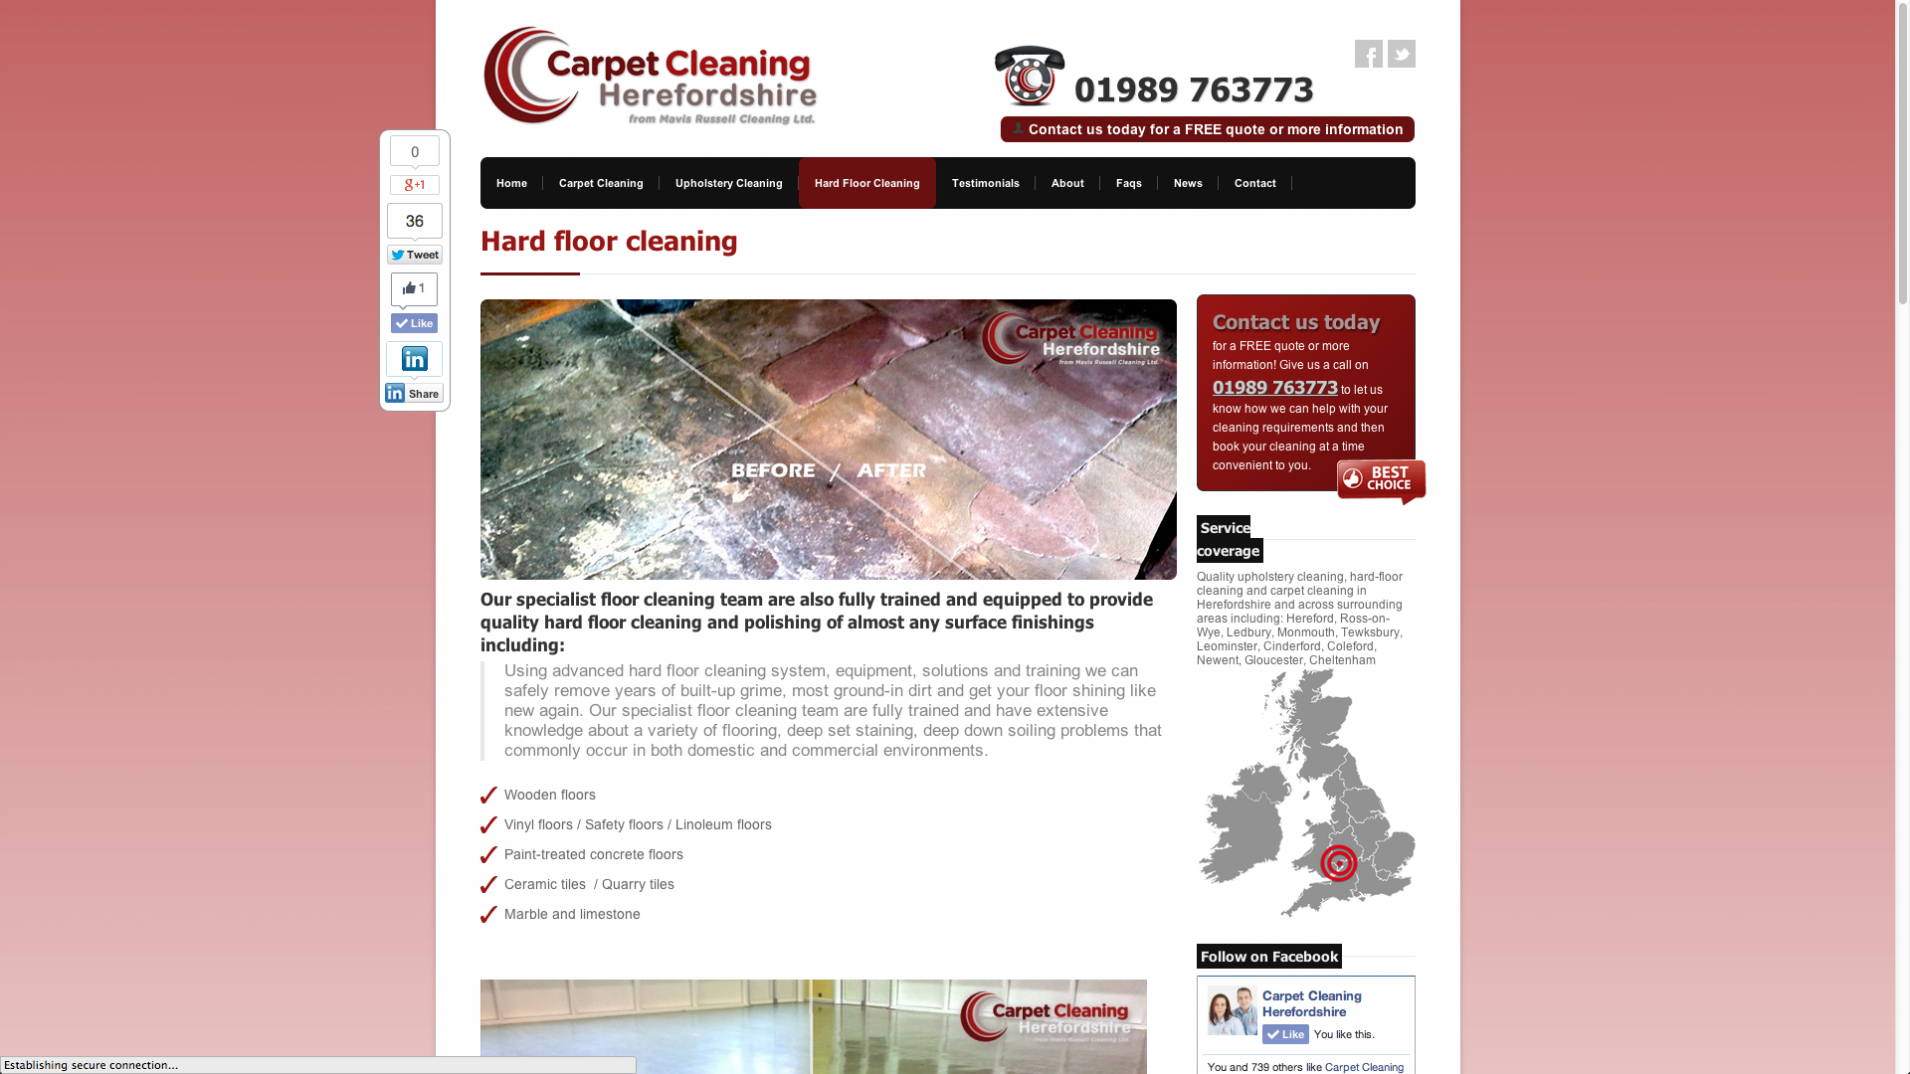 Screen Shot 2013 12 23 at 16.22.26 - Website design for floorcare company